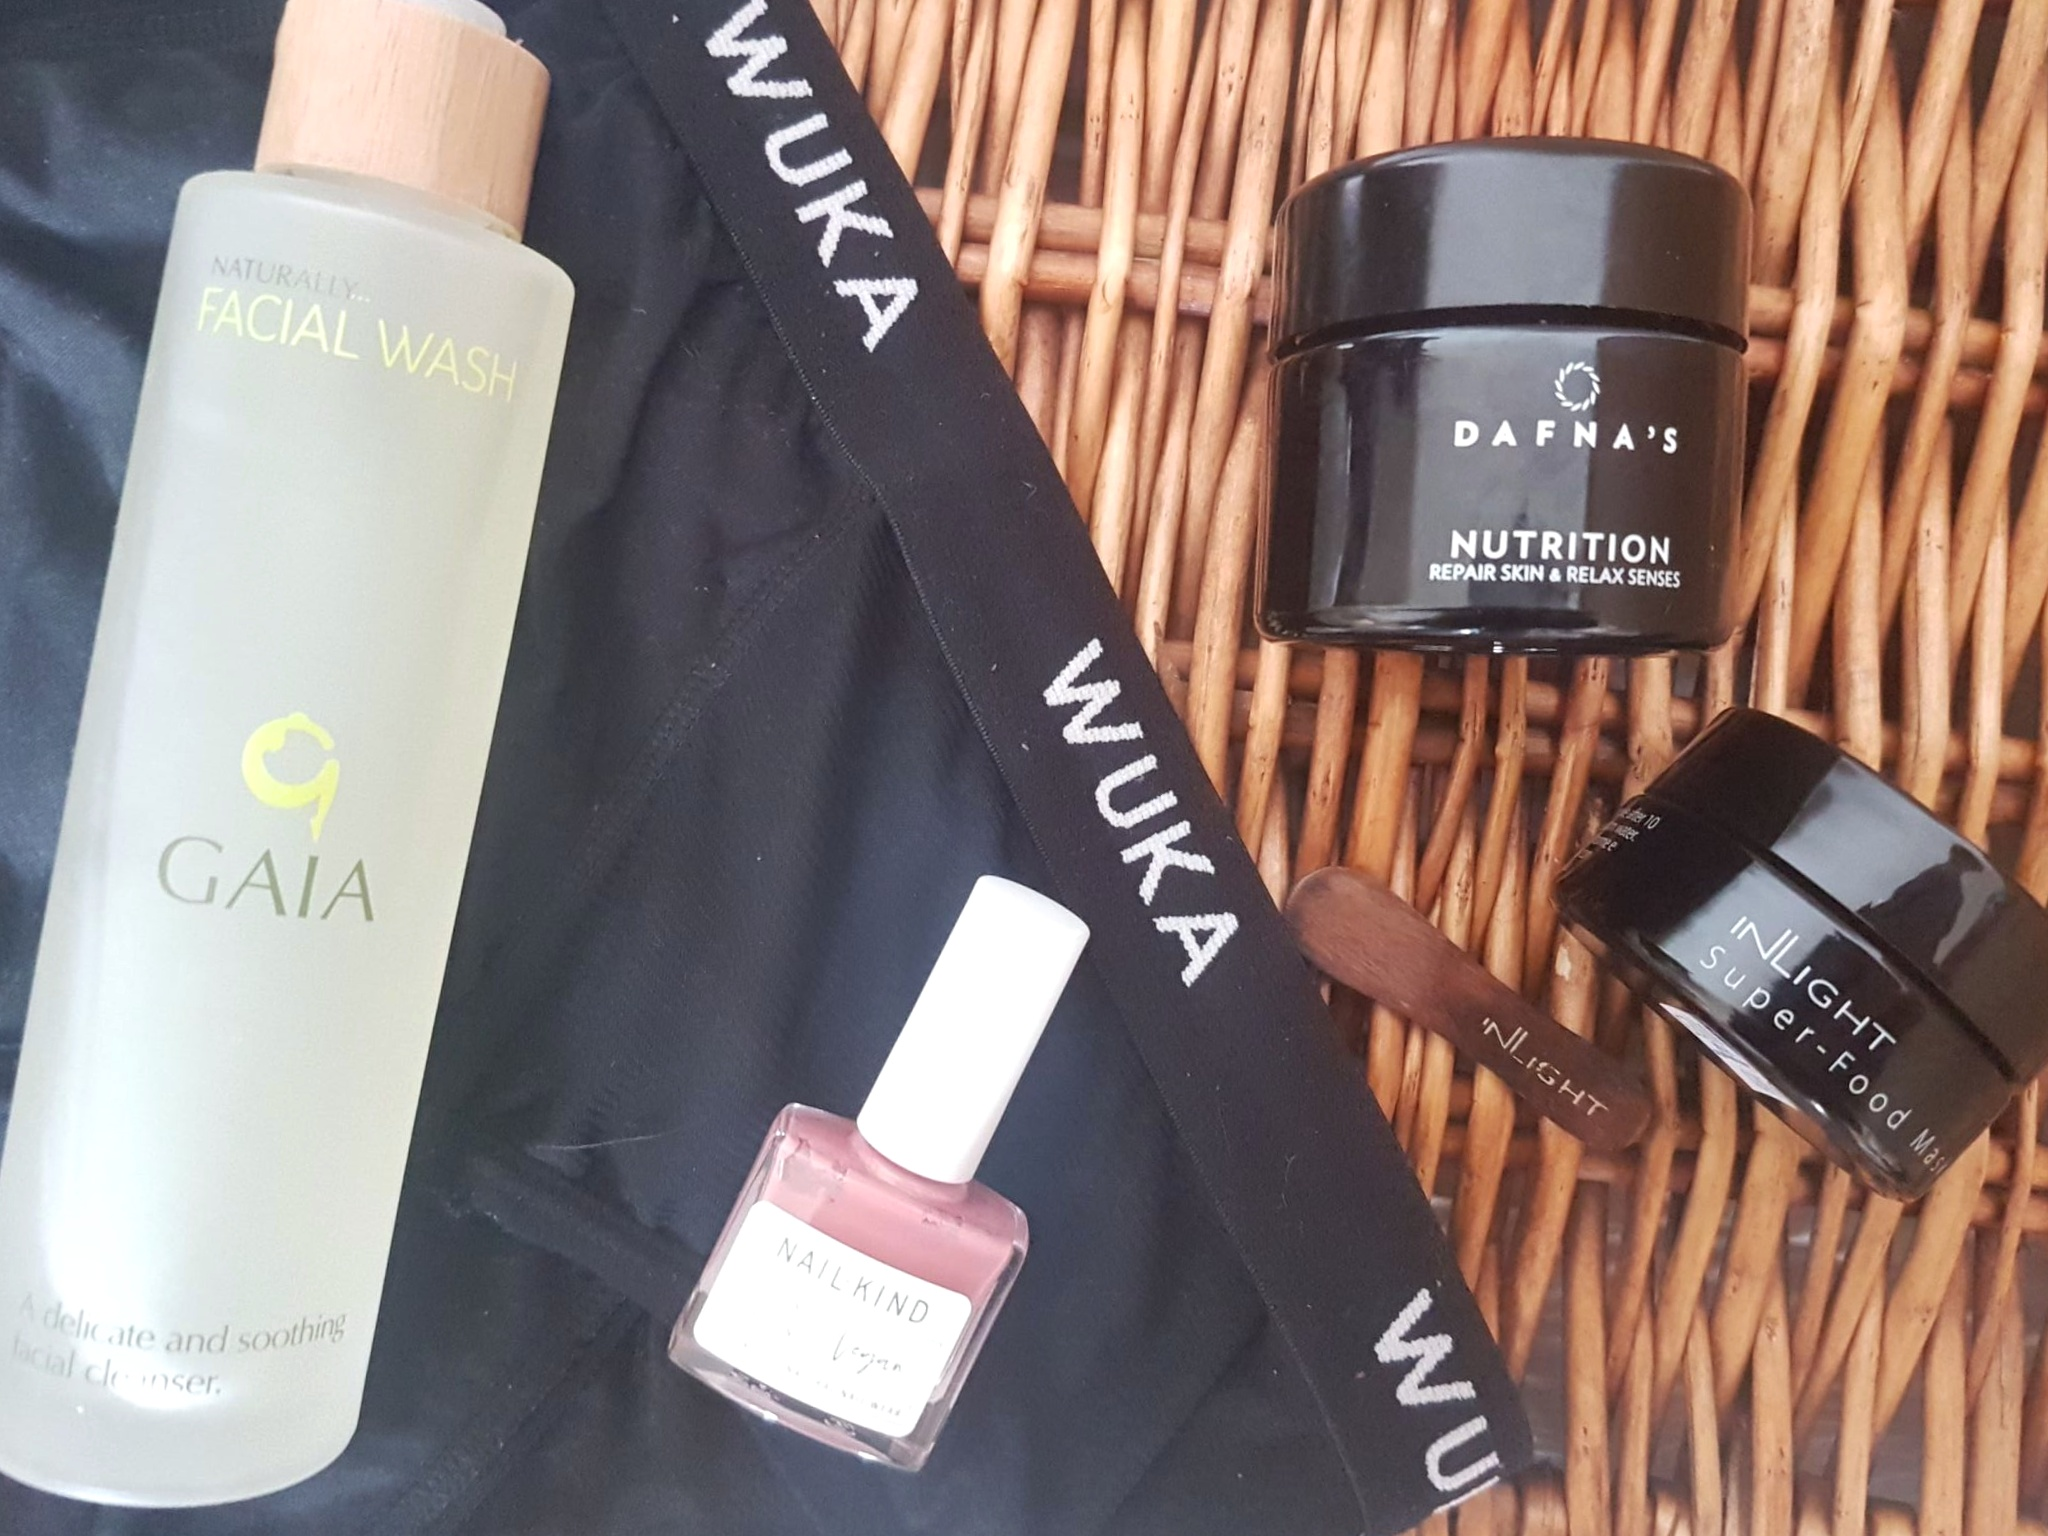 Wuka reusable period pants along with other Beauty Shortlist favourites like skincare from Gaia and Dafna's plus vegan nail polish from Nailkind